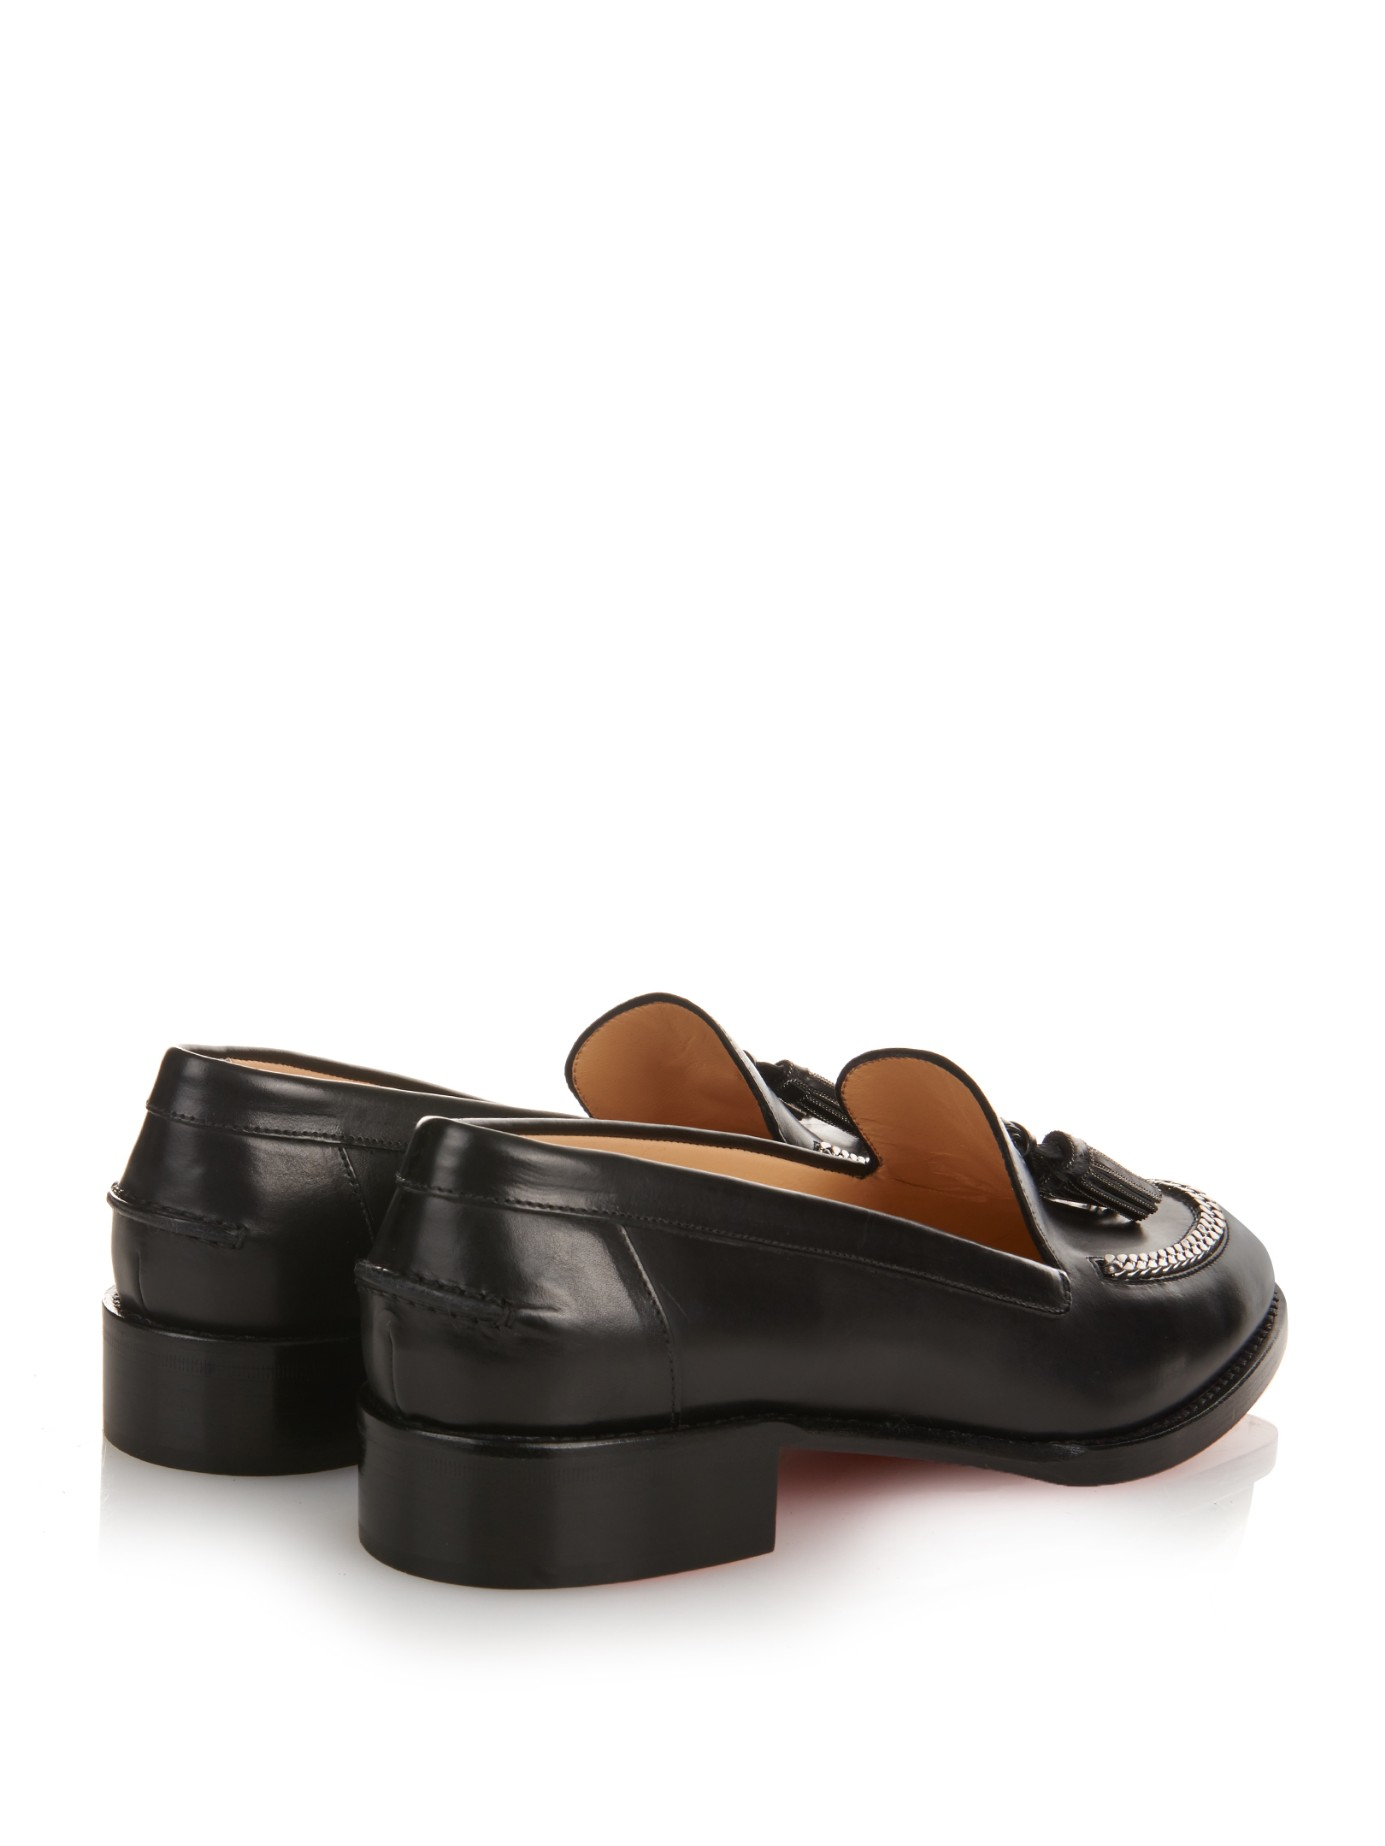 christian louboutin loafers Black leather leather tassels | The ...